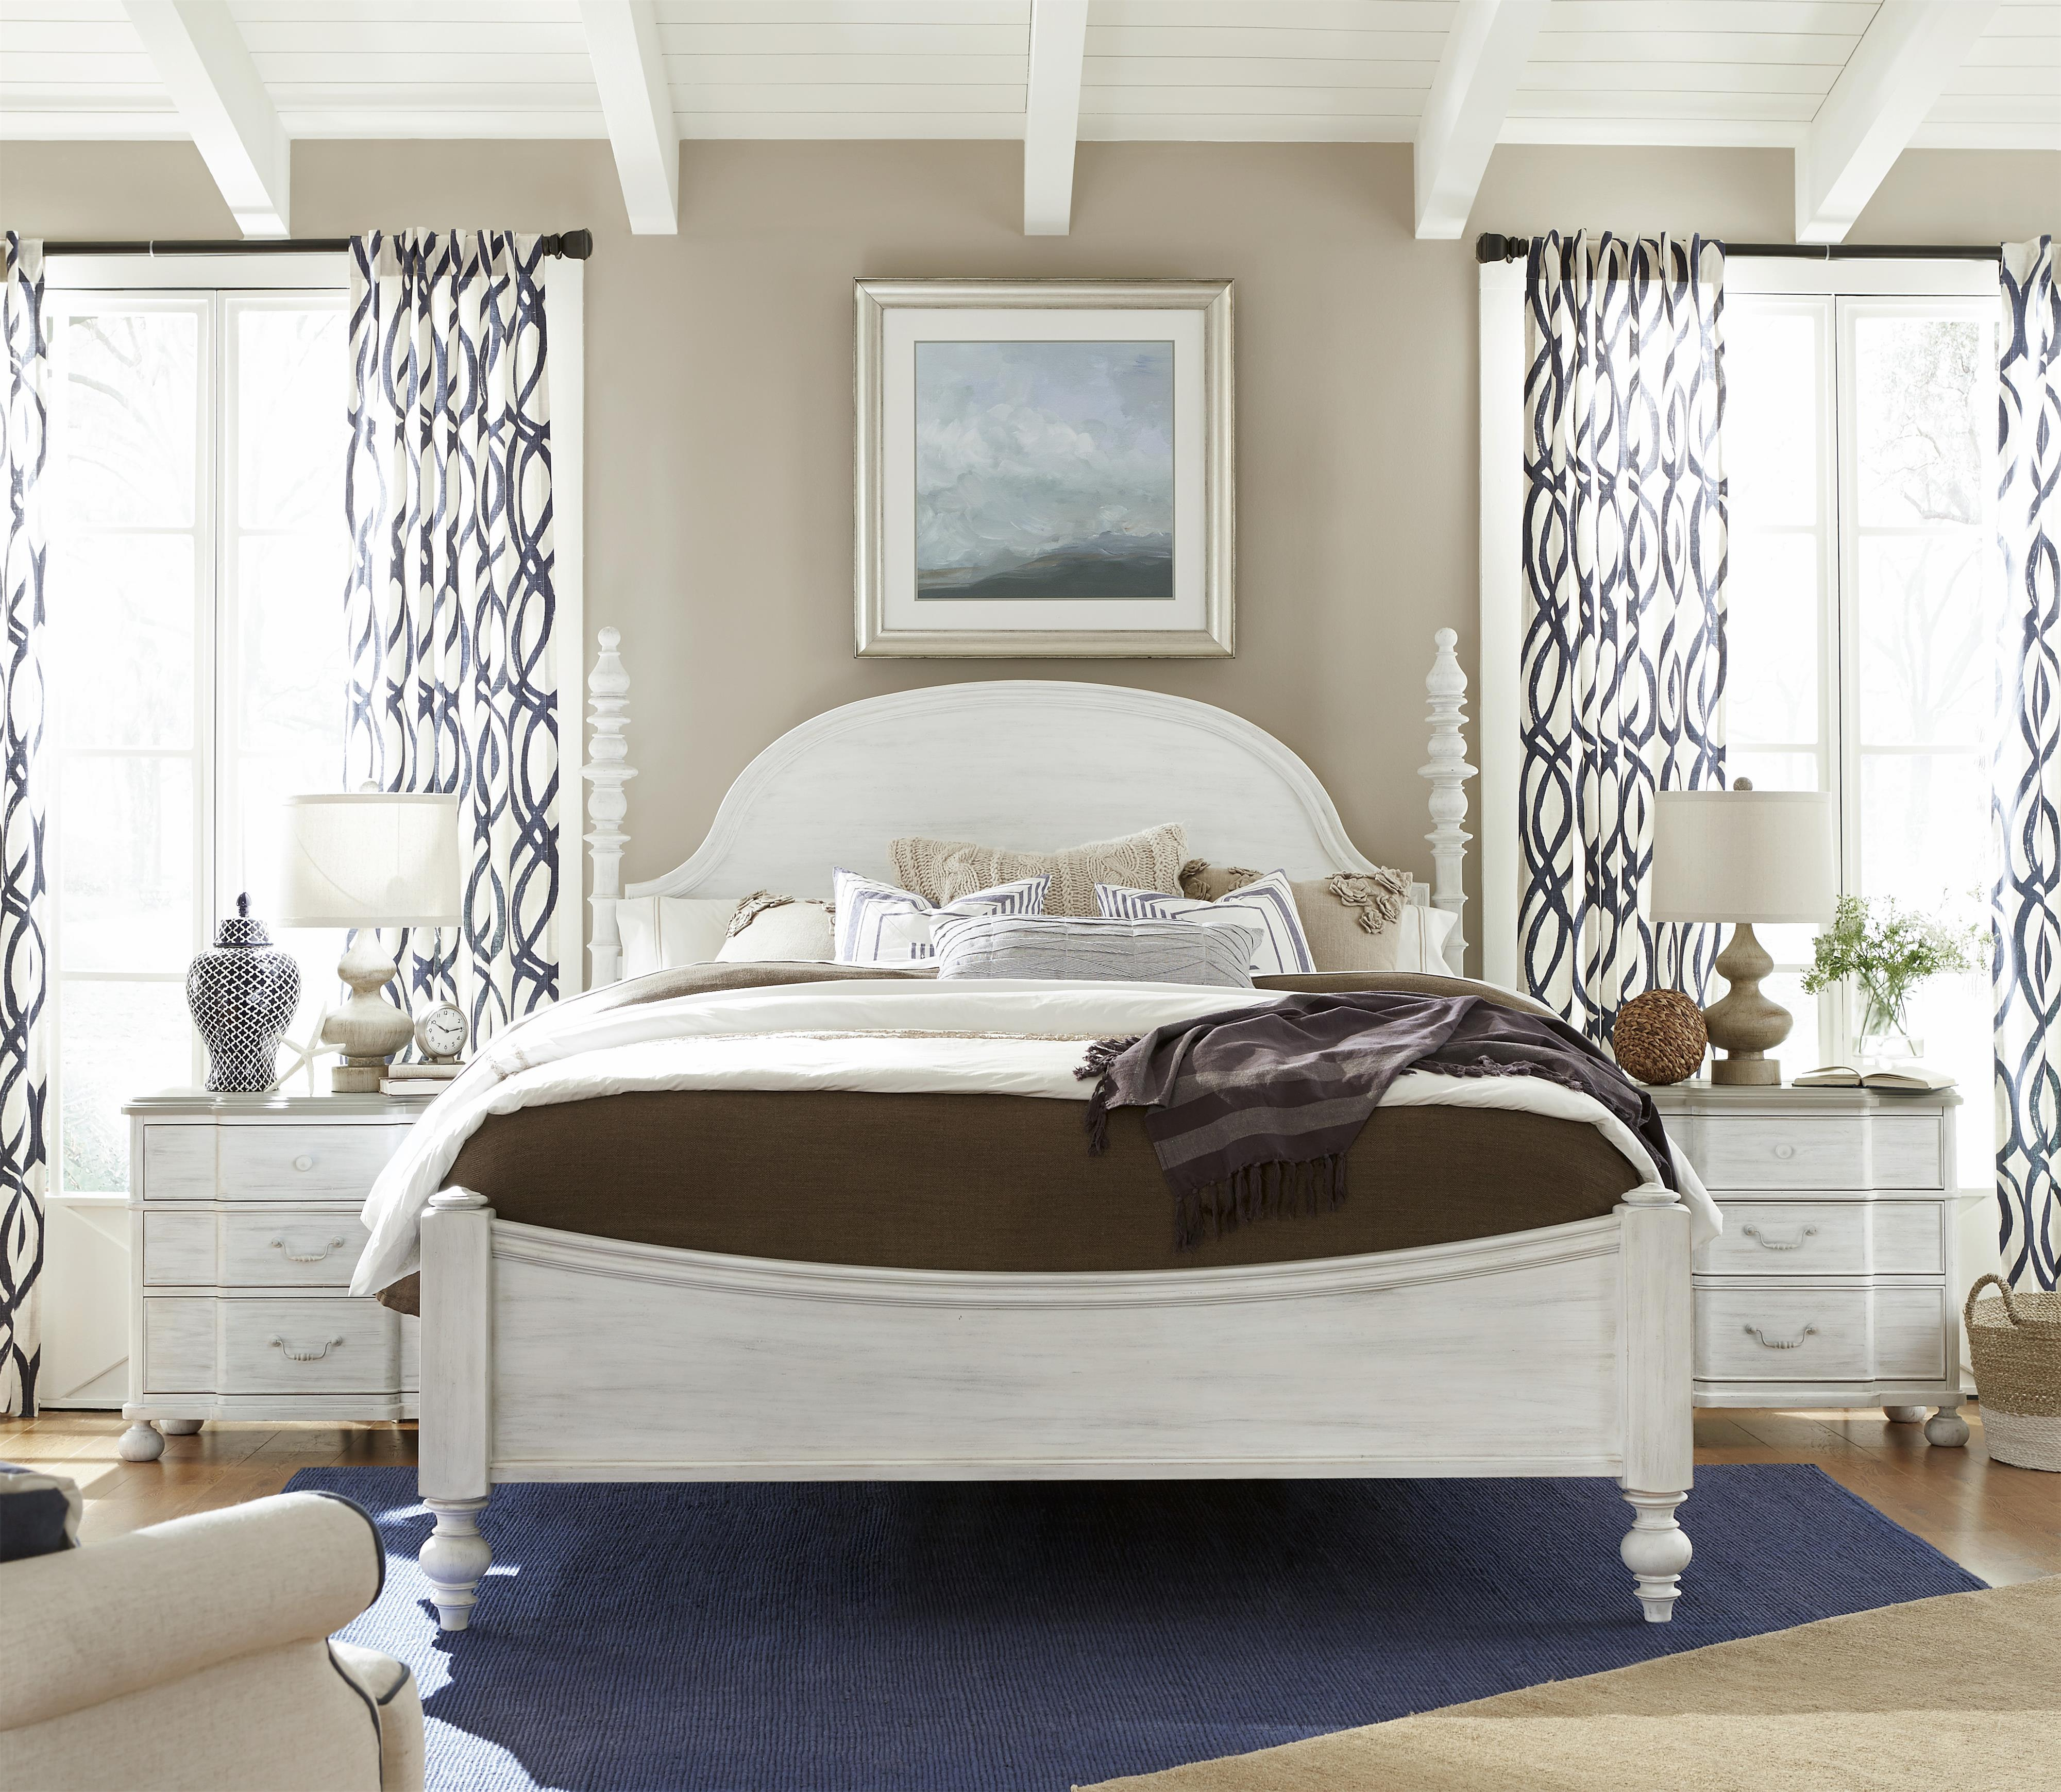 Paula Deen by Universal Dogwood King Bedroom Group - Item Number: 597 K Bedroom Group 2